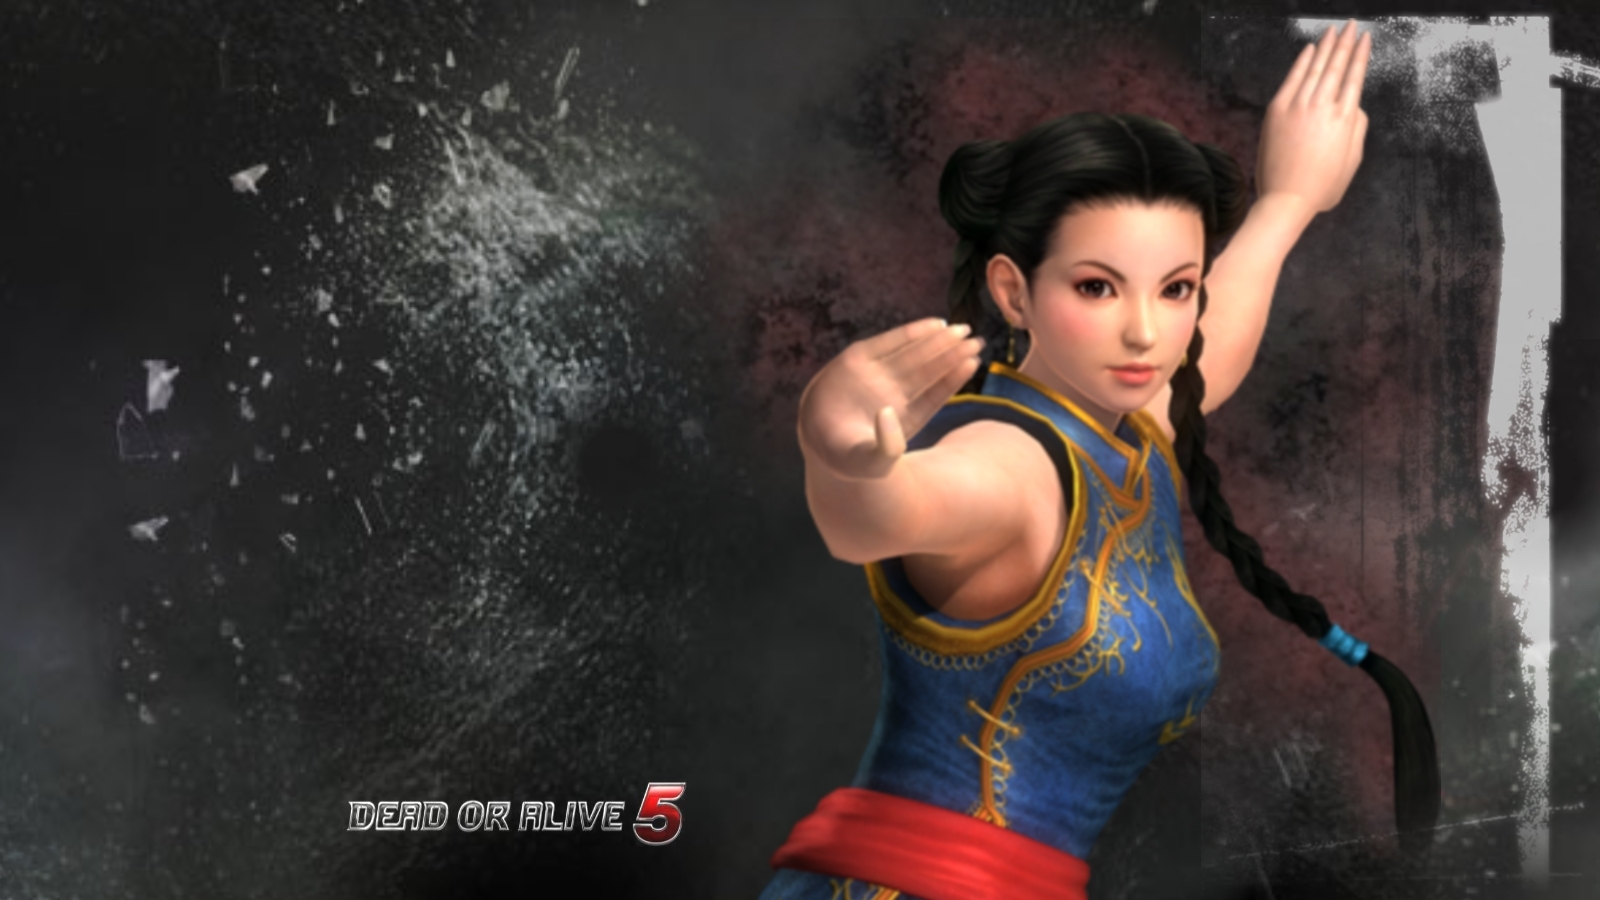 Free Download Rendered Bits Fanmade Dead Or Alive 5 Game Wallpaper